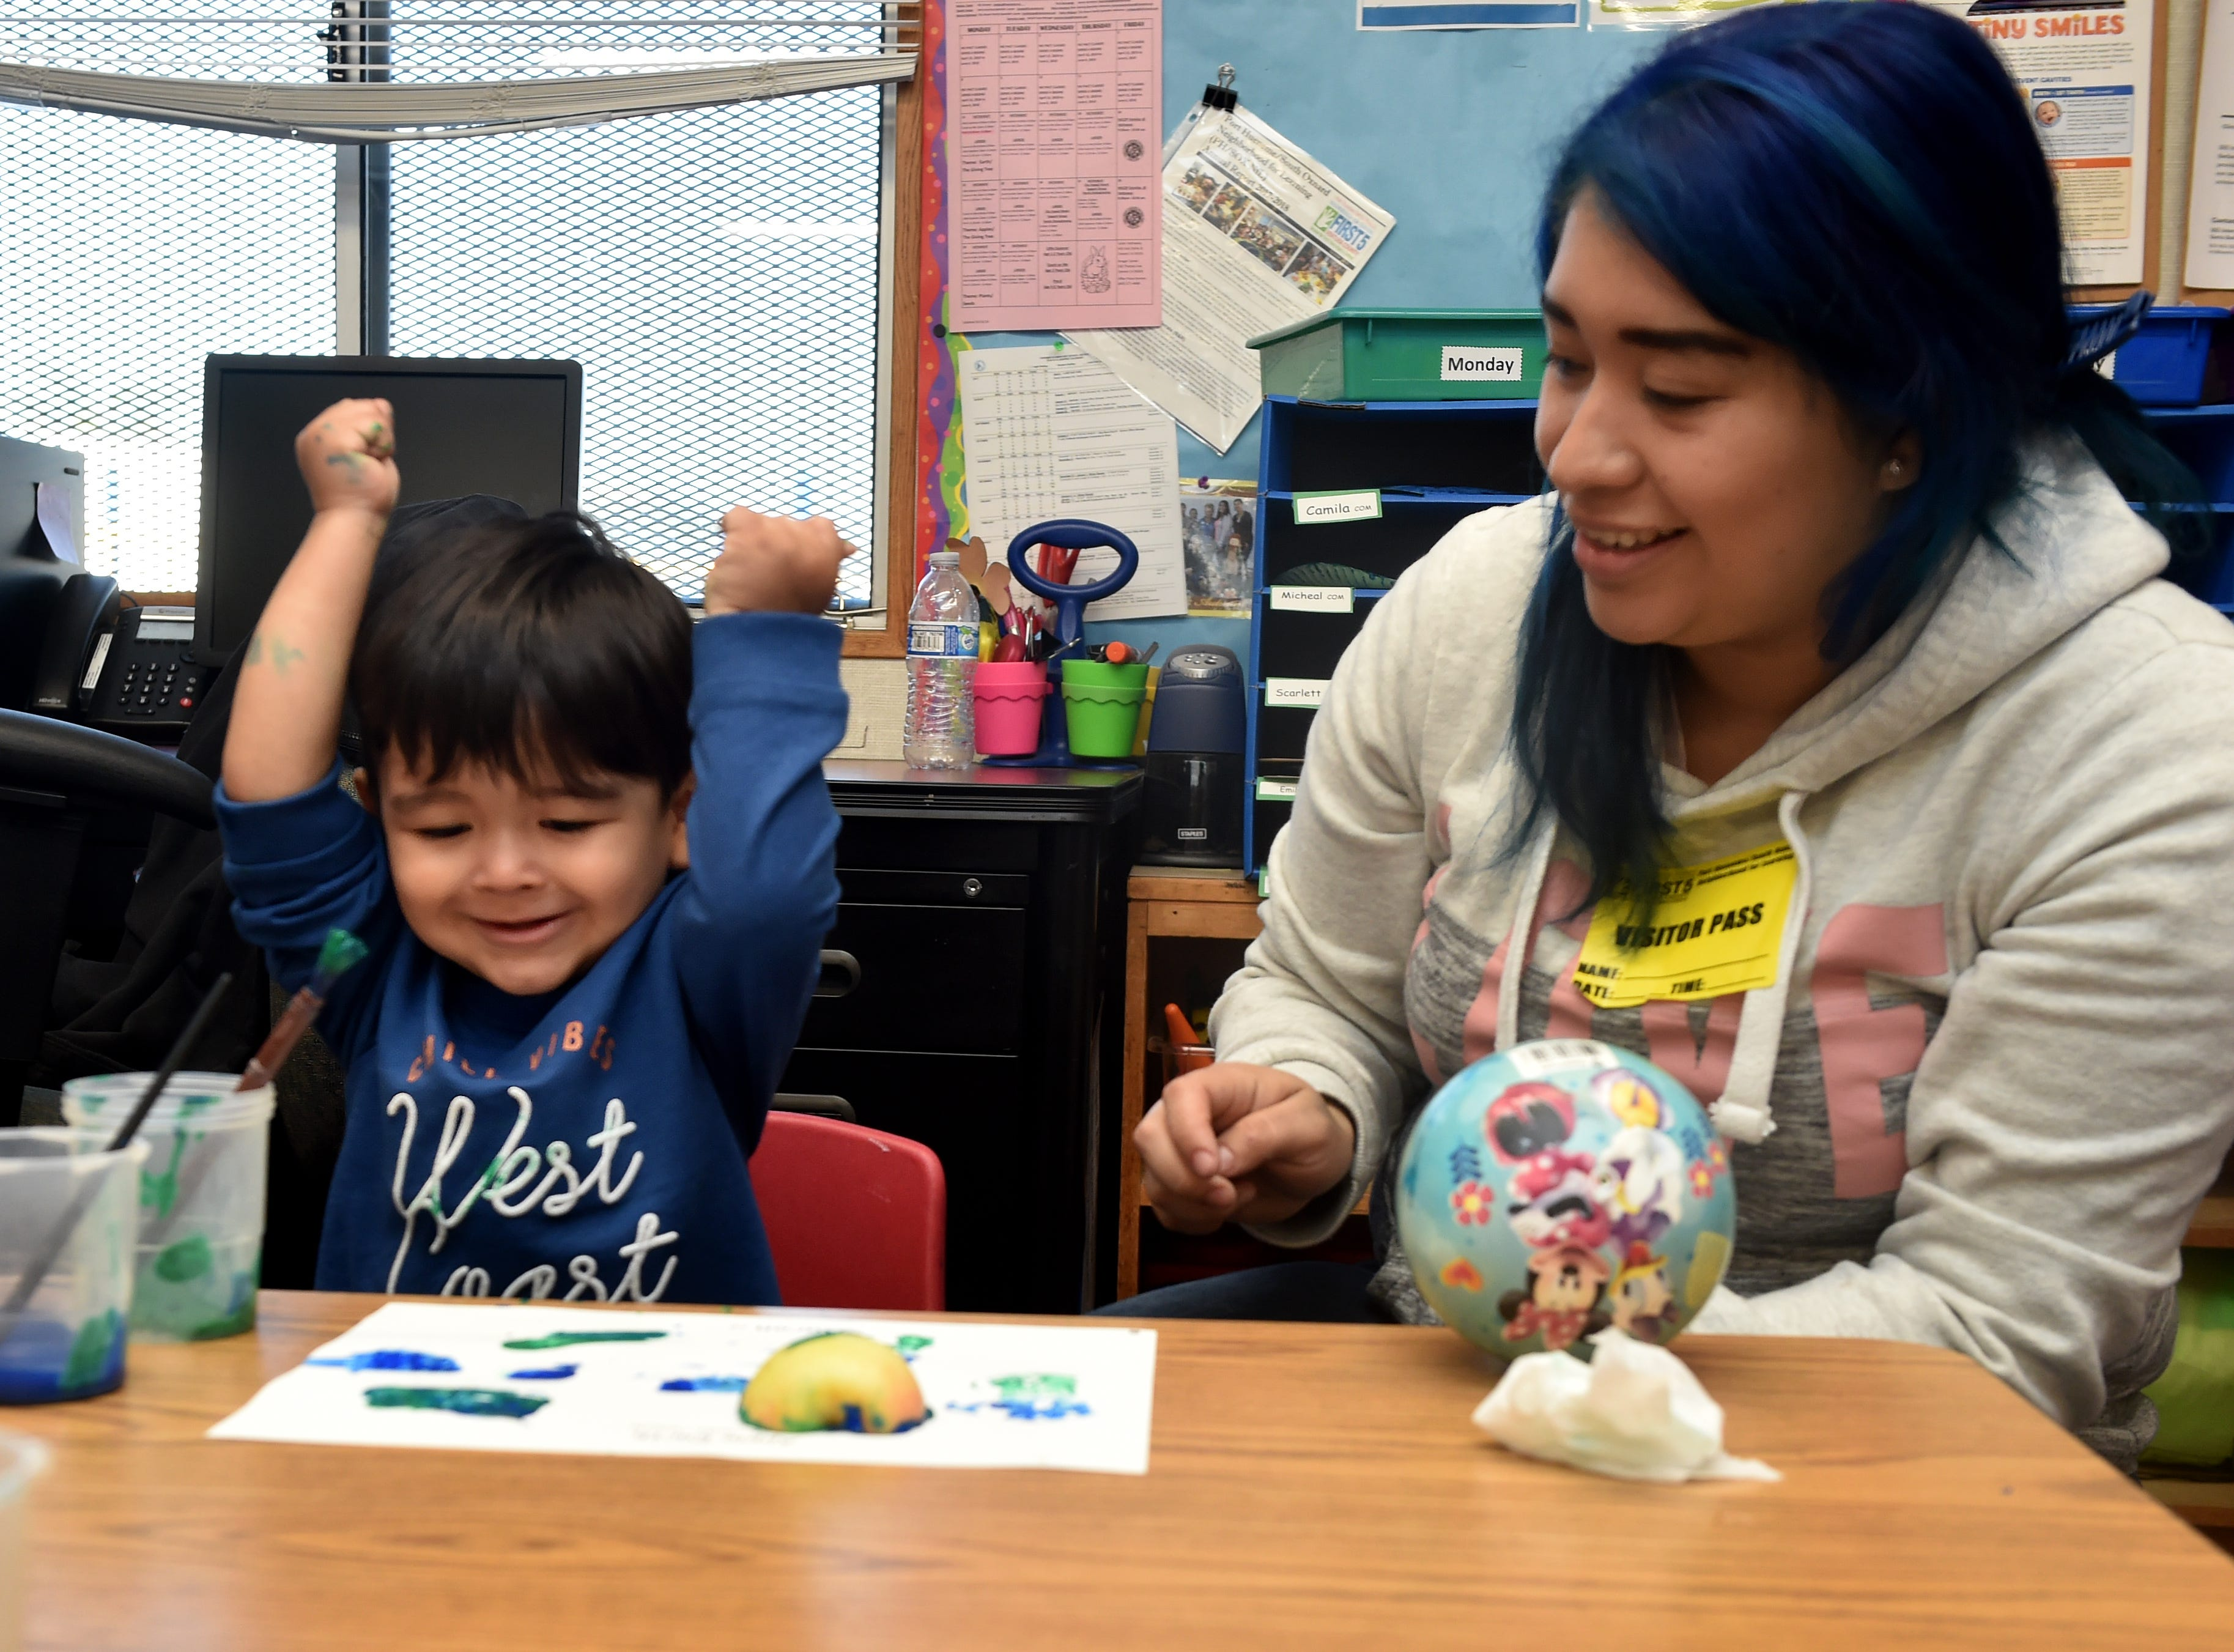 Aaron Juarez, age 2, paints with his mother, April Alzivar, during a First 5 Neighborhoods for Learning class at Hathaway Elementary School in Oxnard on April 23.